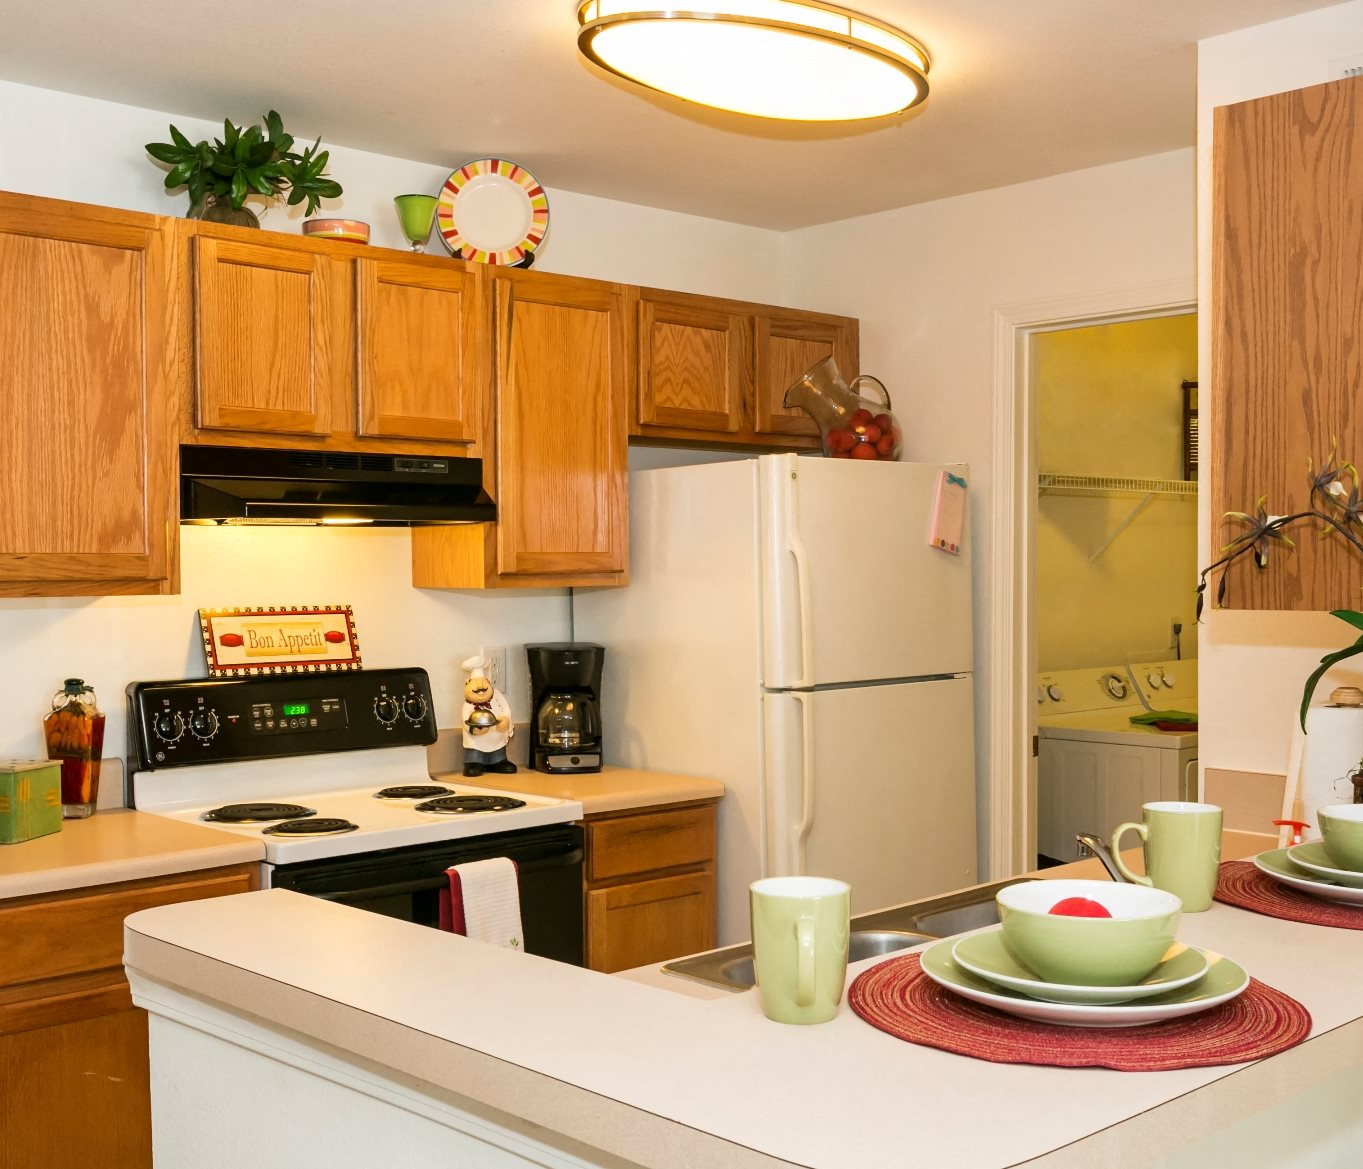 Somerset Apartments: Apartments In Cartersville, GA